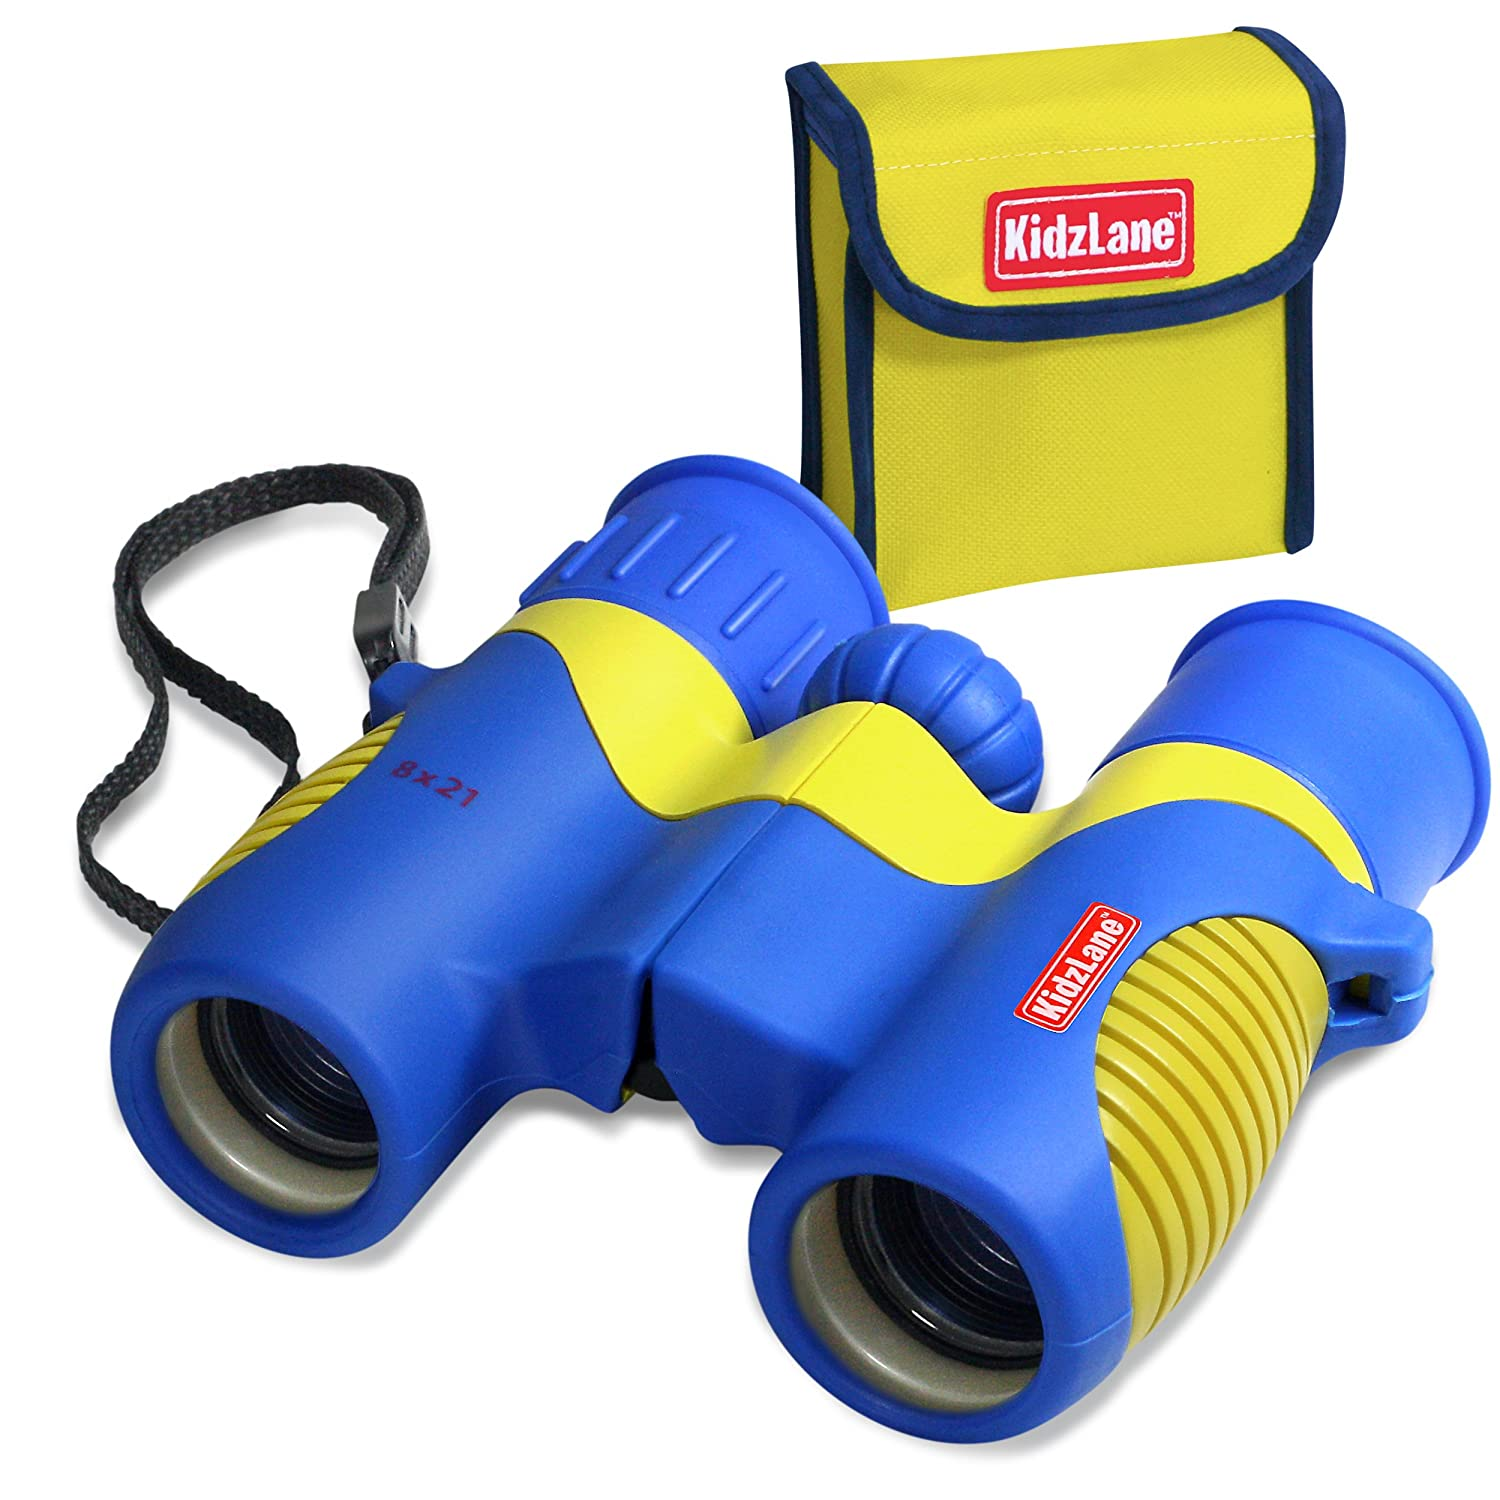 Kidzlane Binoculars for Kids - 8x21